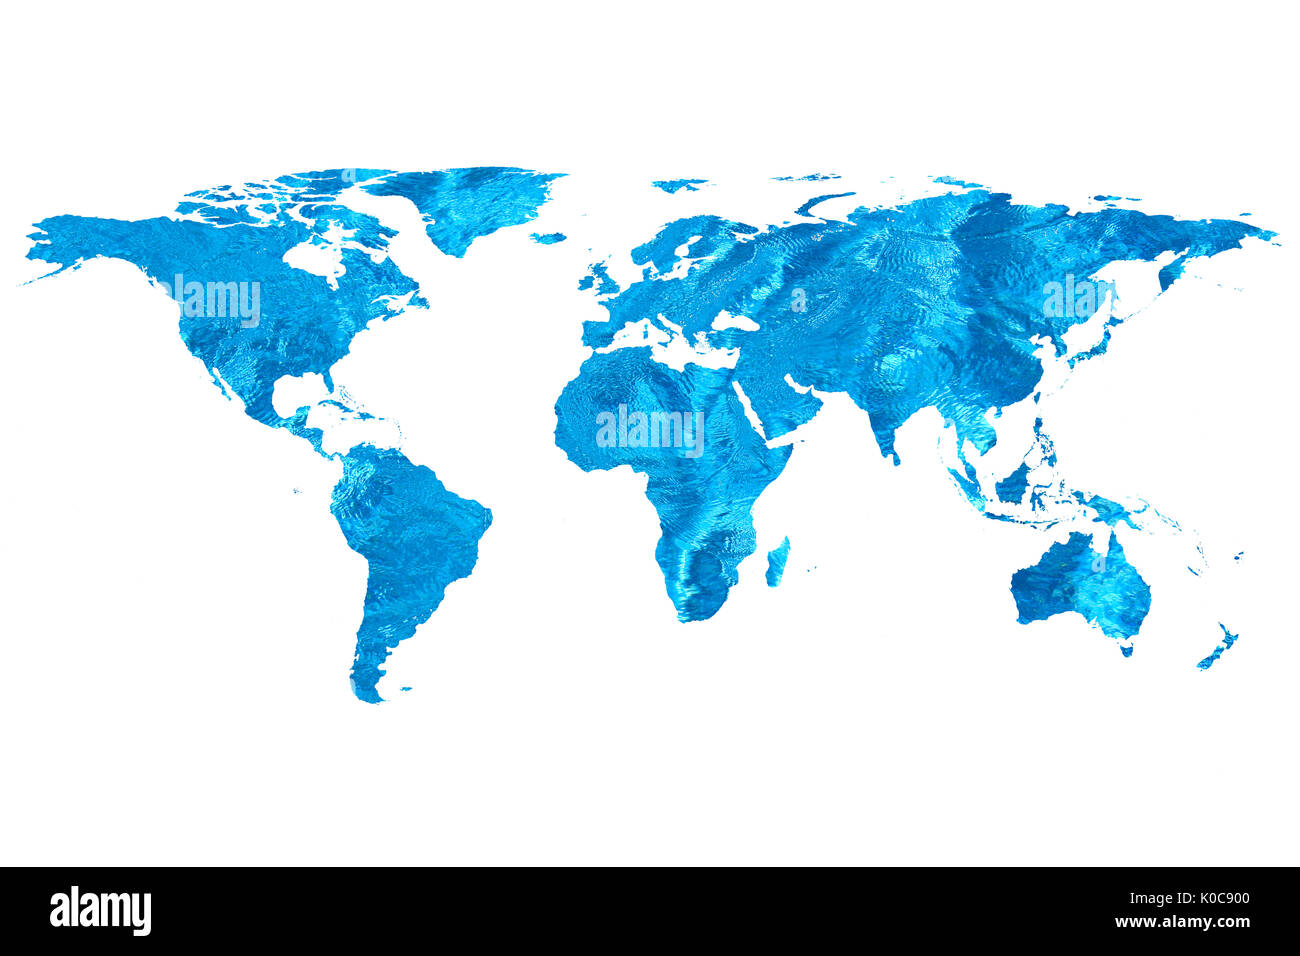 isolated flat world map and water. NASA flat world map image used to furnish this image. - Stock Image